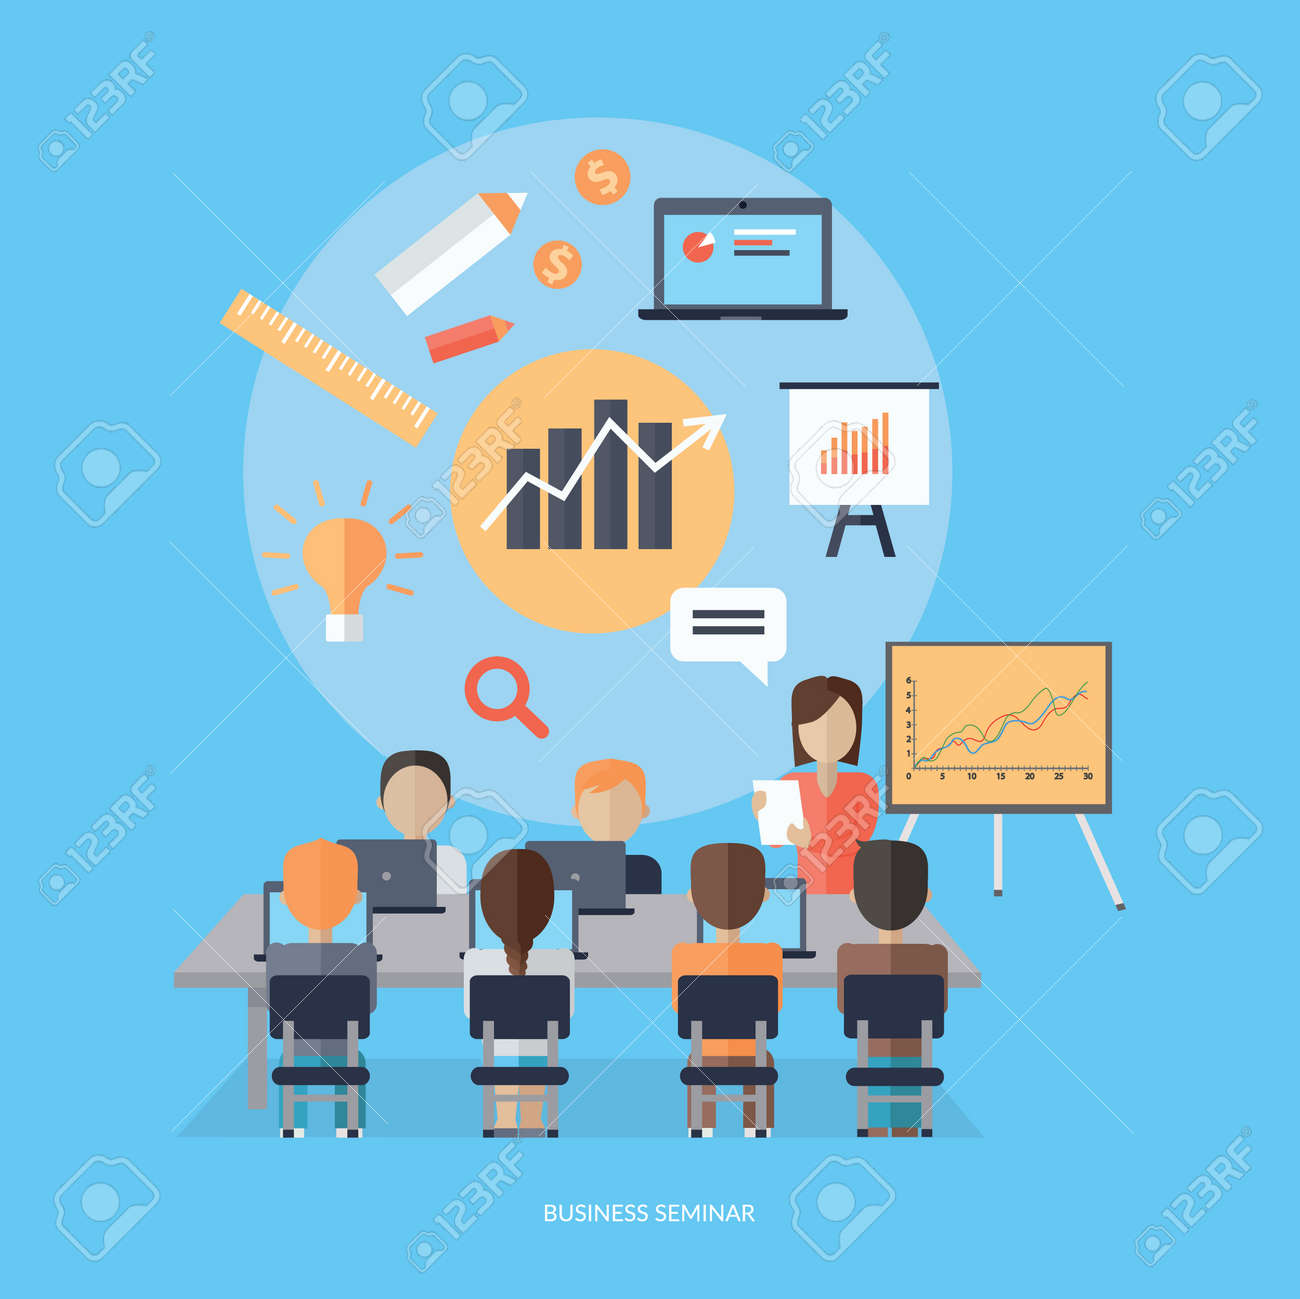 Training staff briefing presentation. Staffing and corporate training, employee seminar, mentor and people, business seminar, meeting group illustration. Woman near board with carts and graphs - 56399866